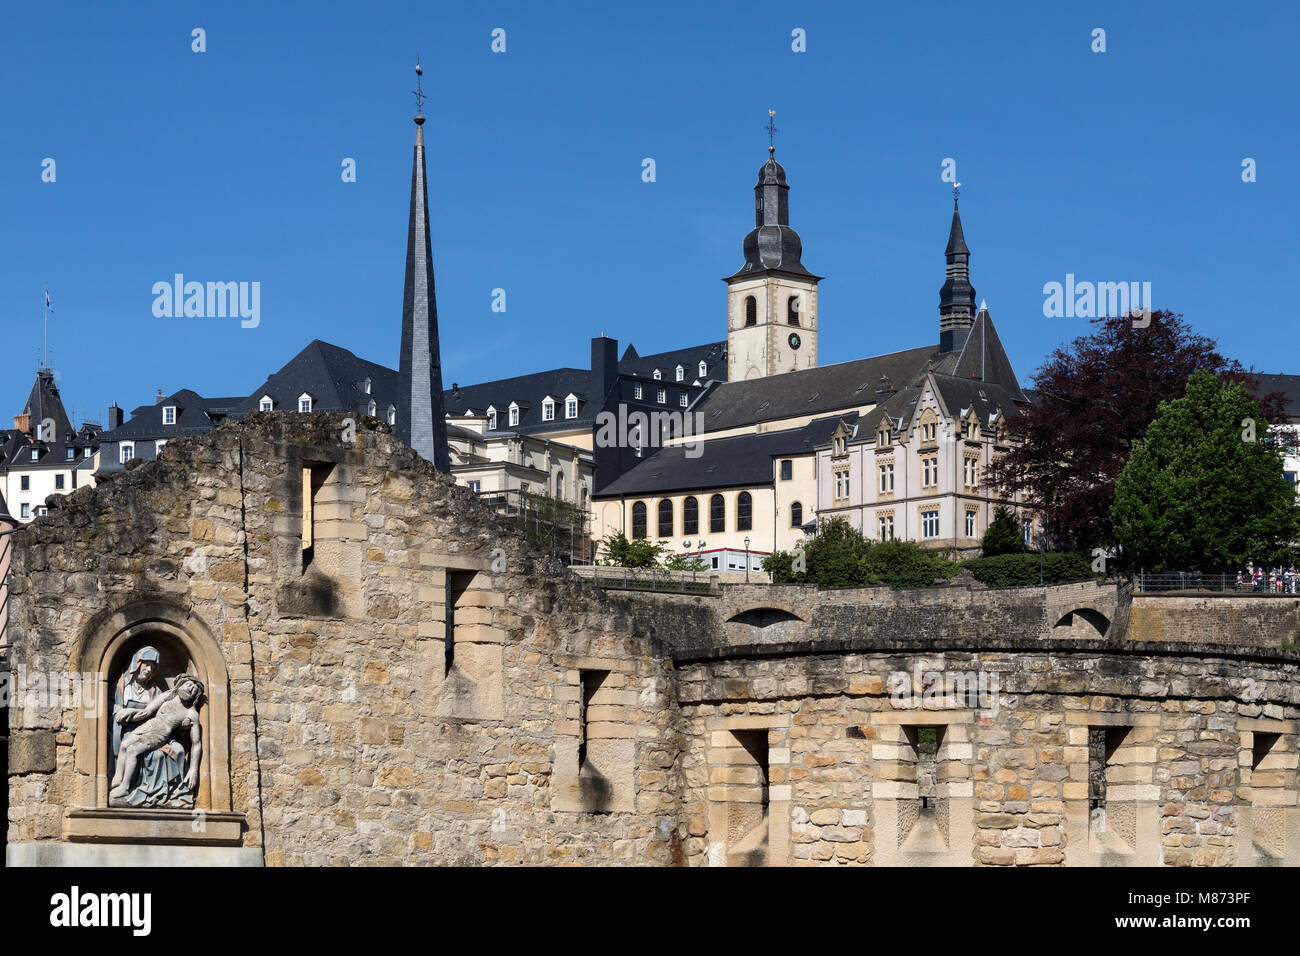 Luxembourg City - Ville de Luxembourg. Part of the walls of the old town viewed from the Grund area of the city. - Stock Image